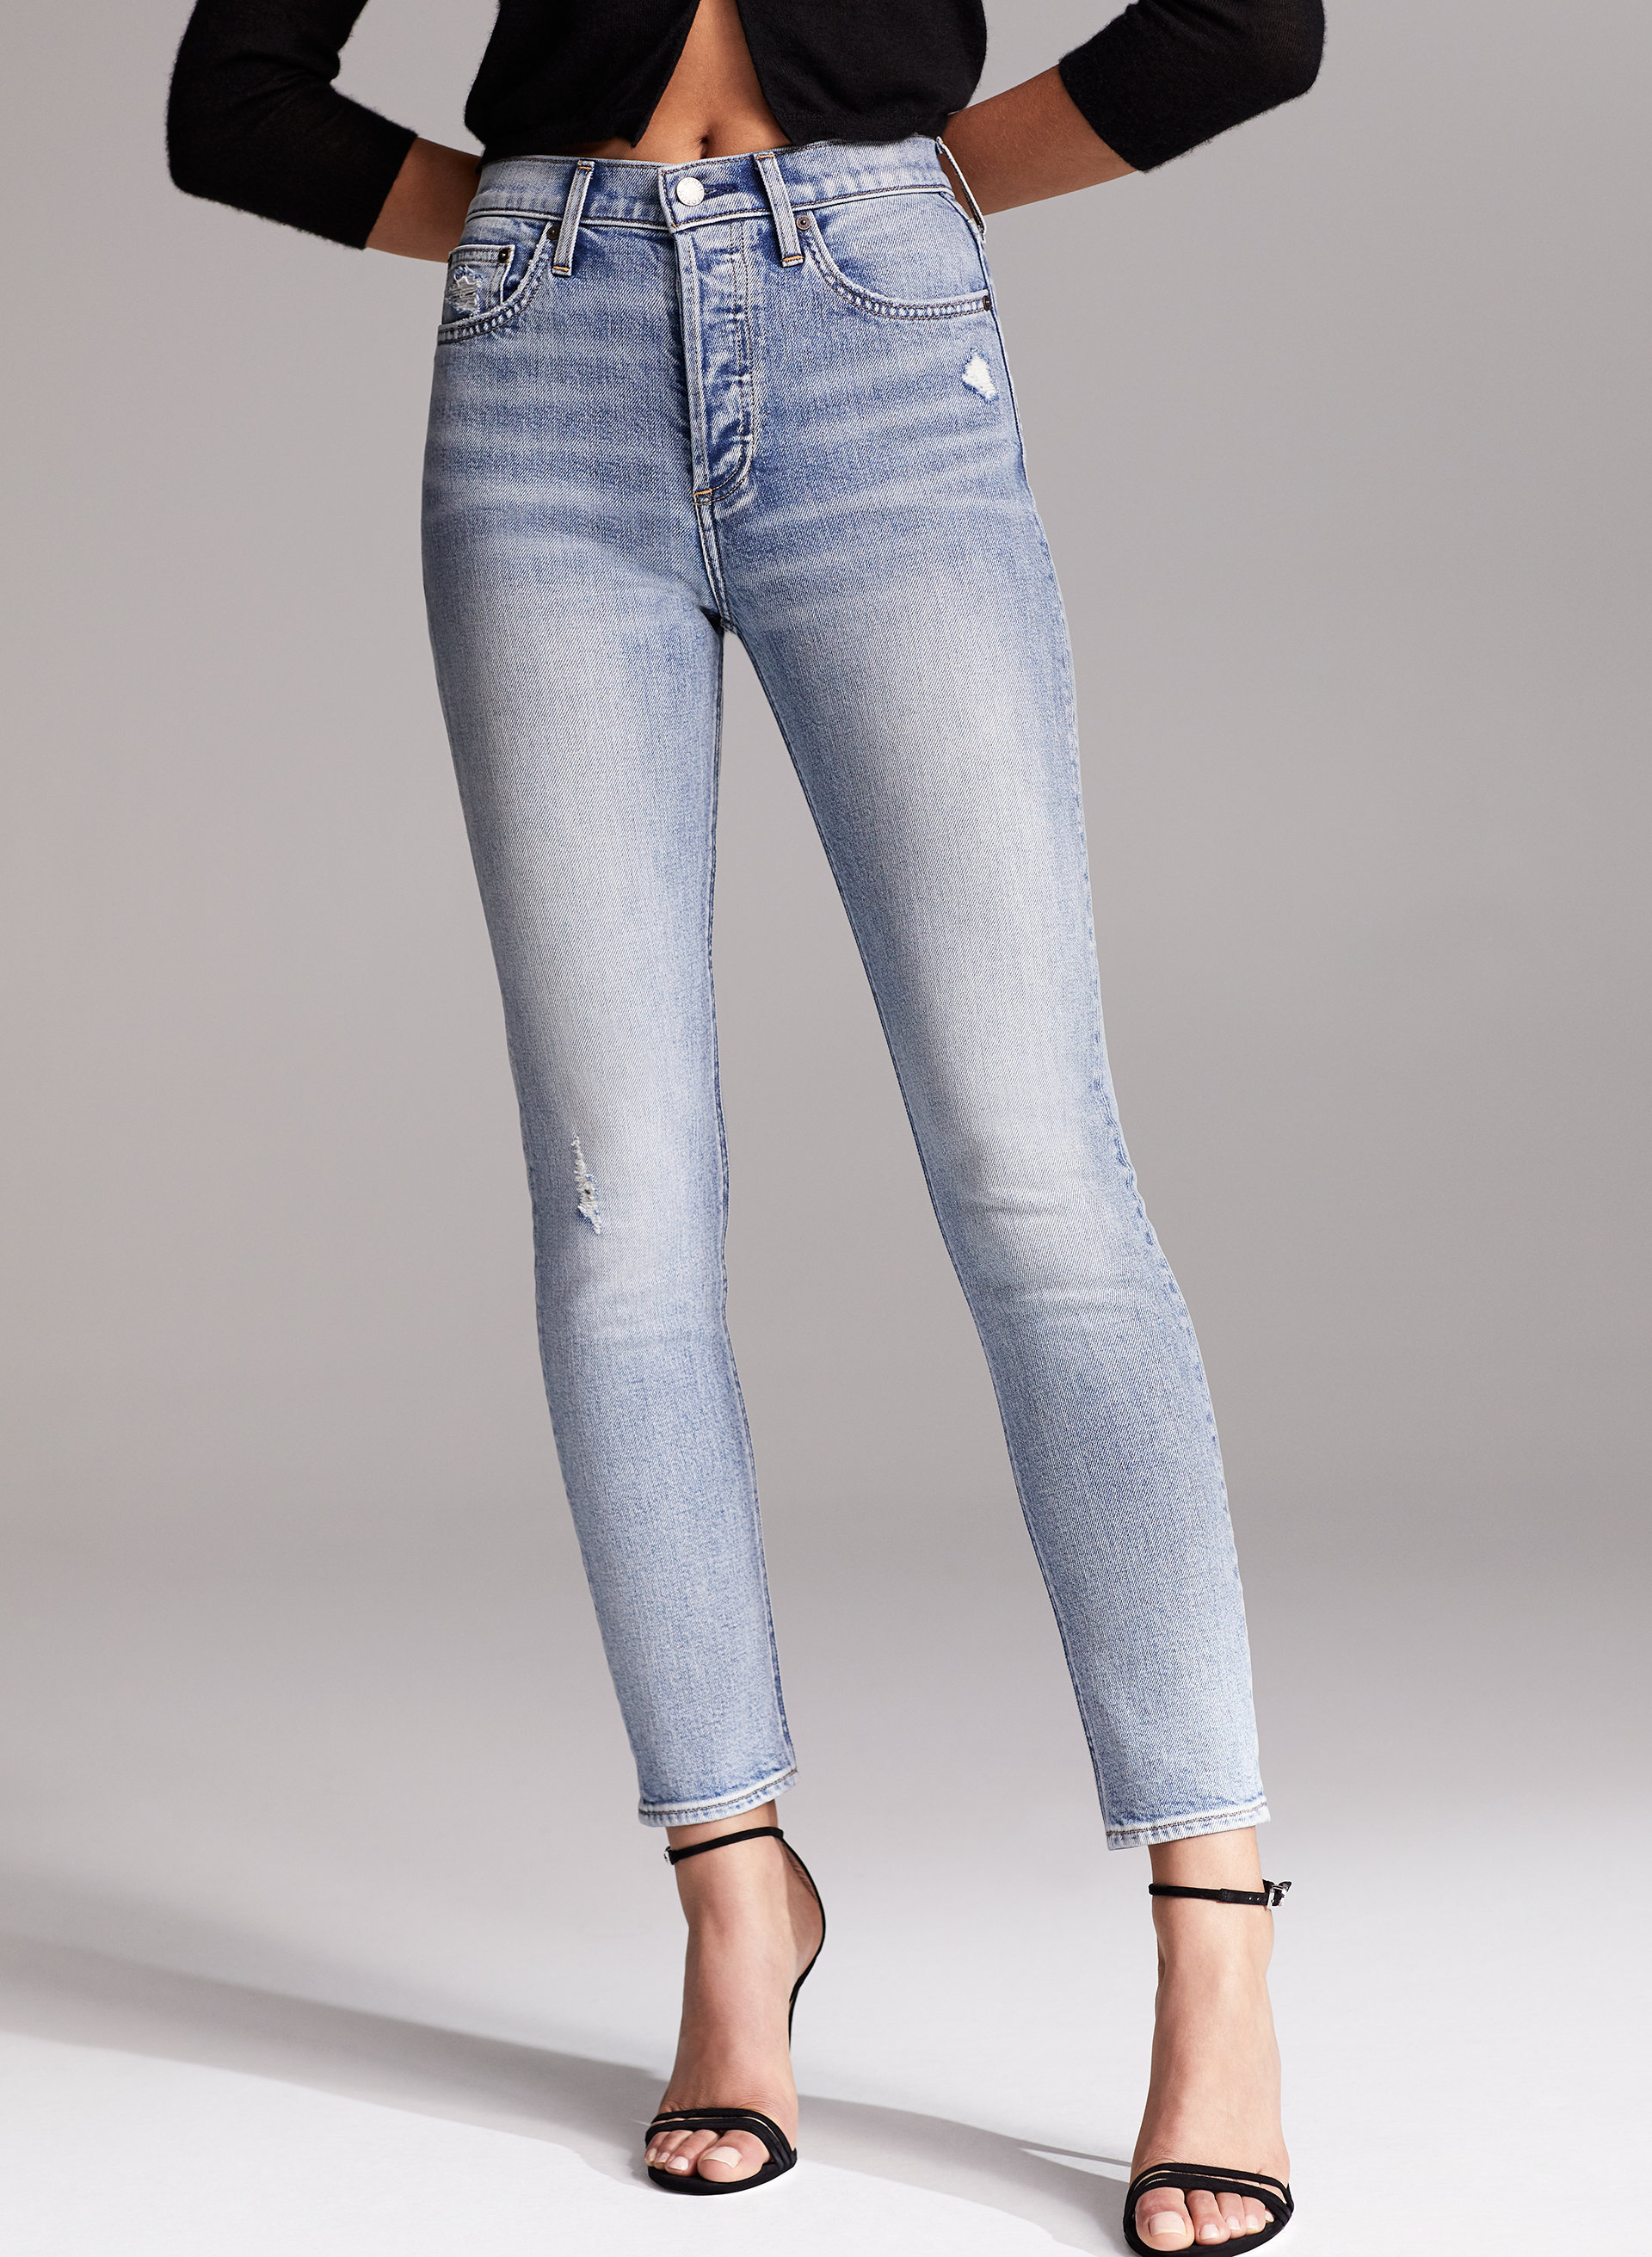 Forum tight jeans Finally, Jeans